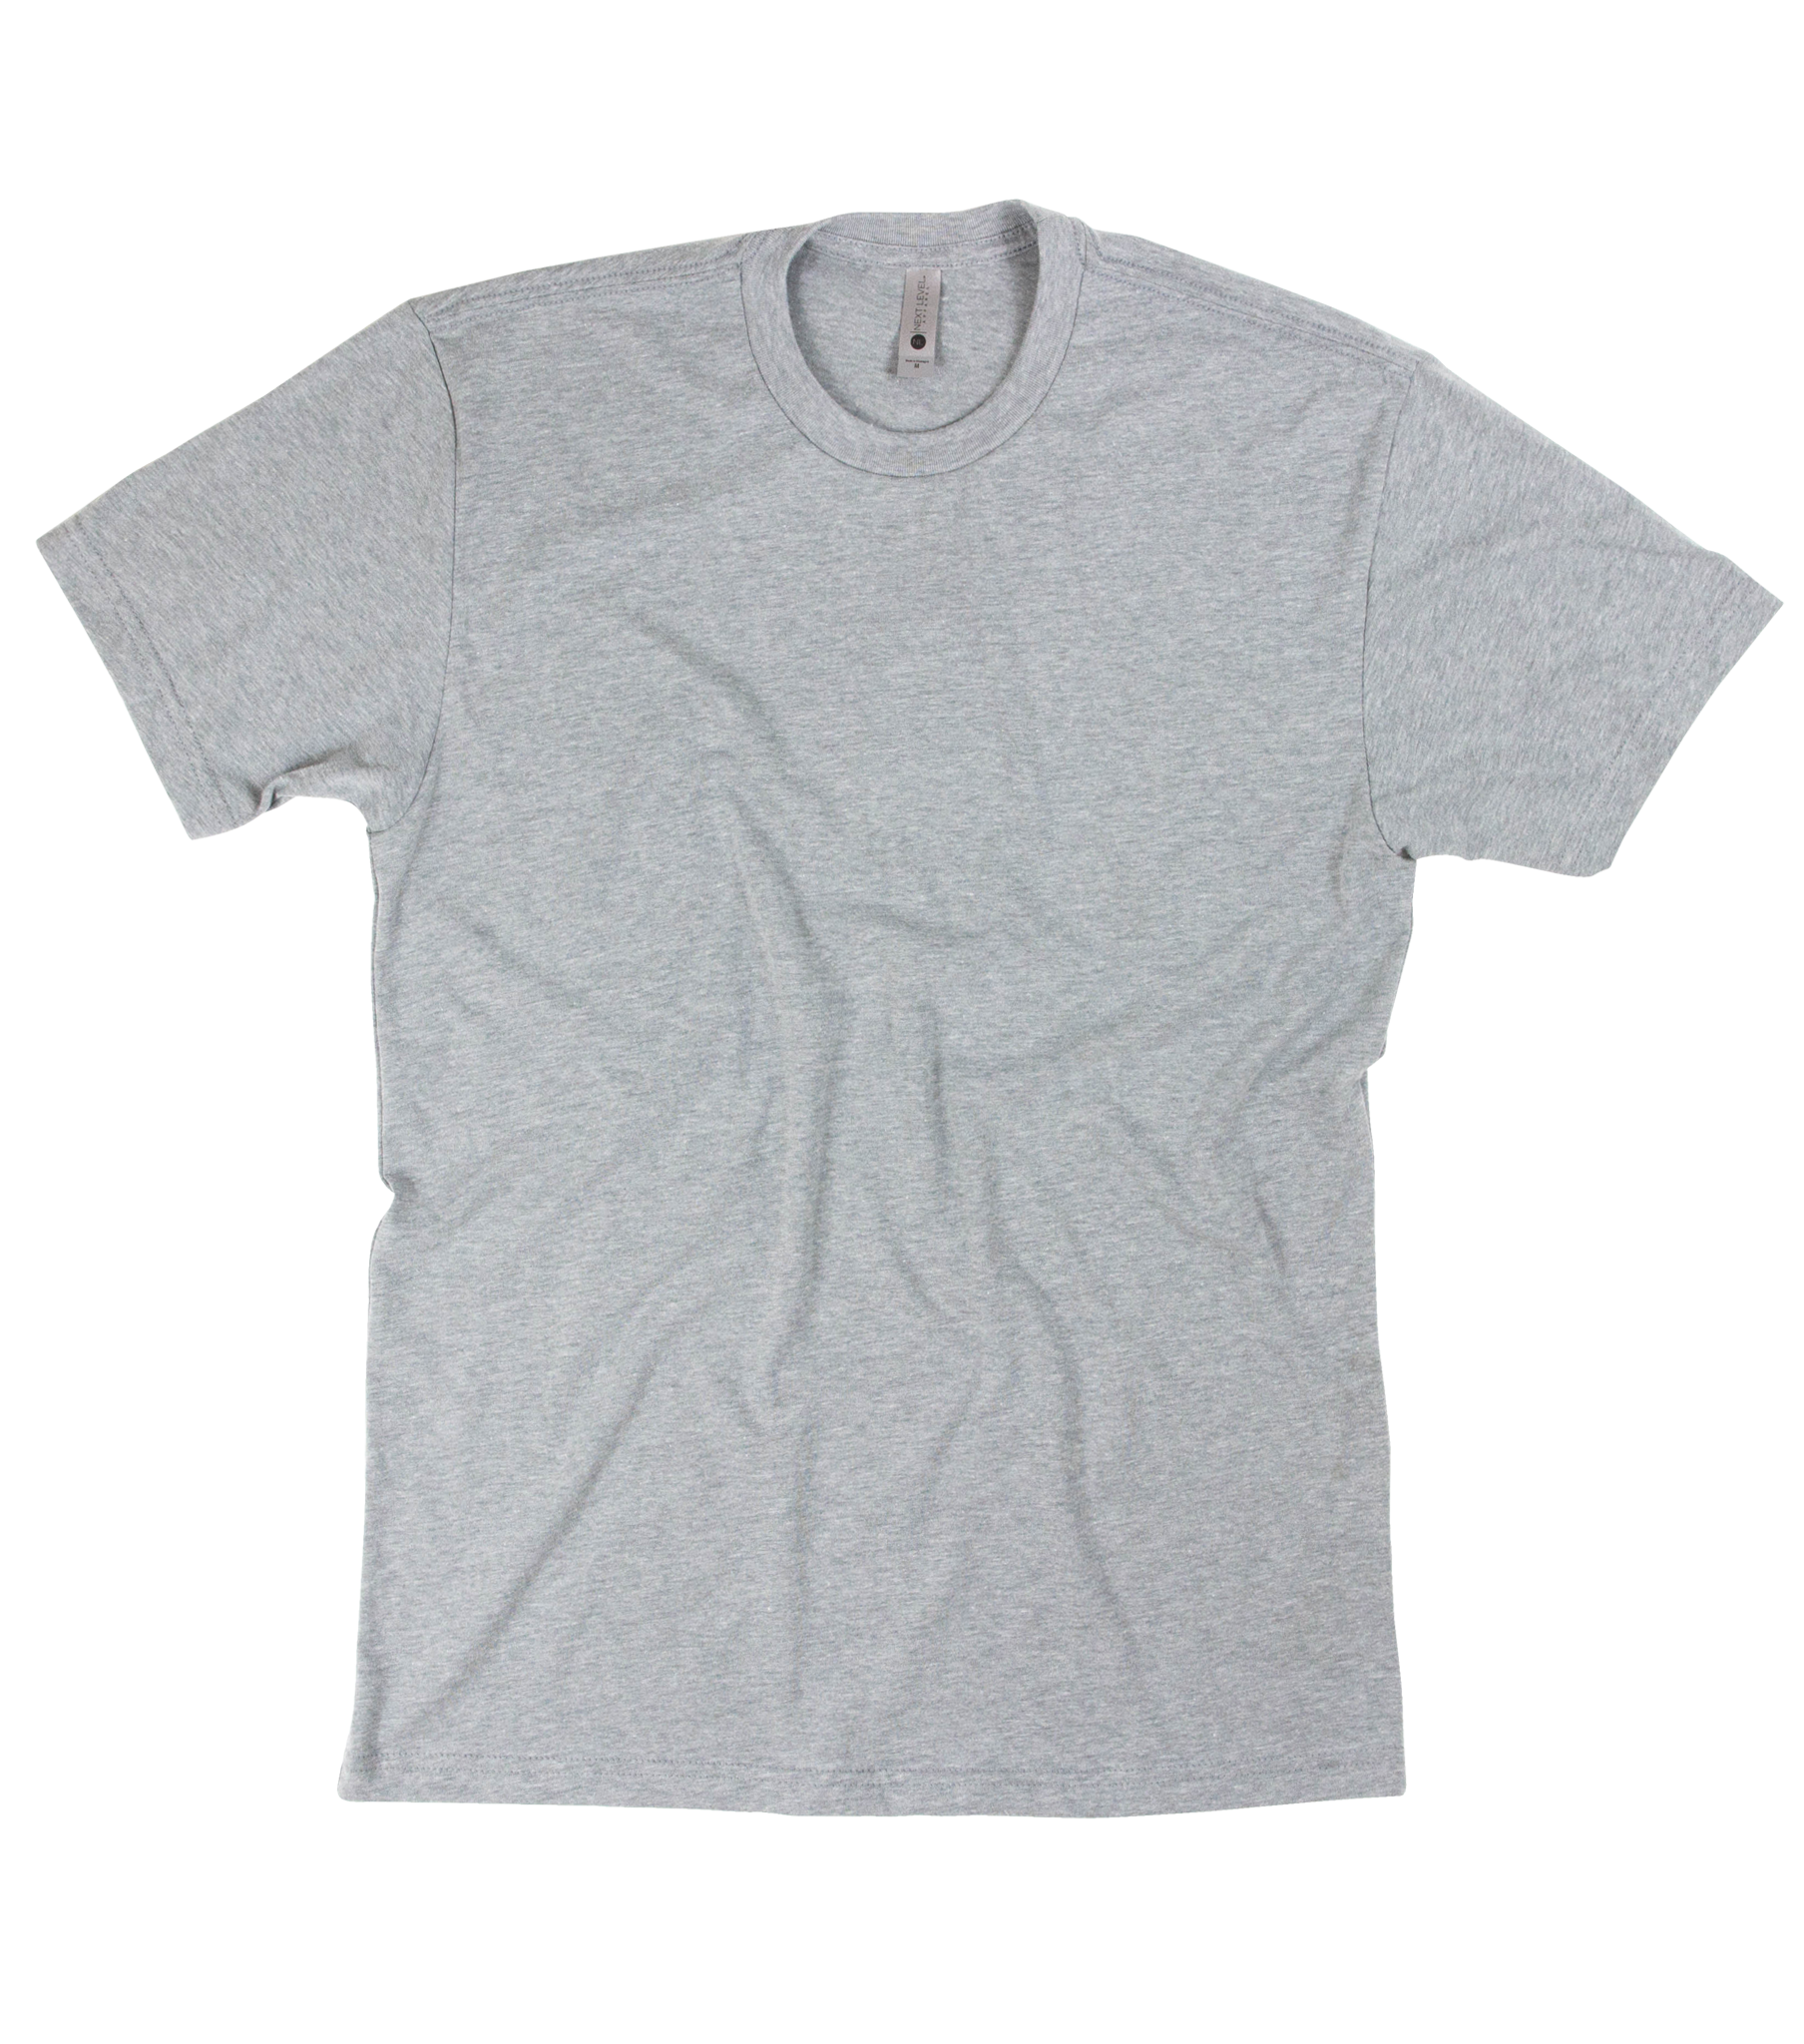 The Softest Unisex Custom T Shirts Free Shipping On All Web Orders